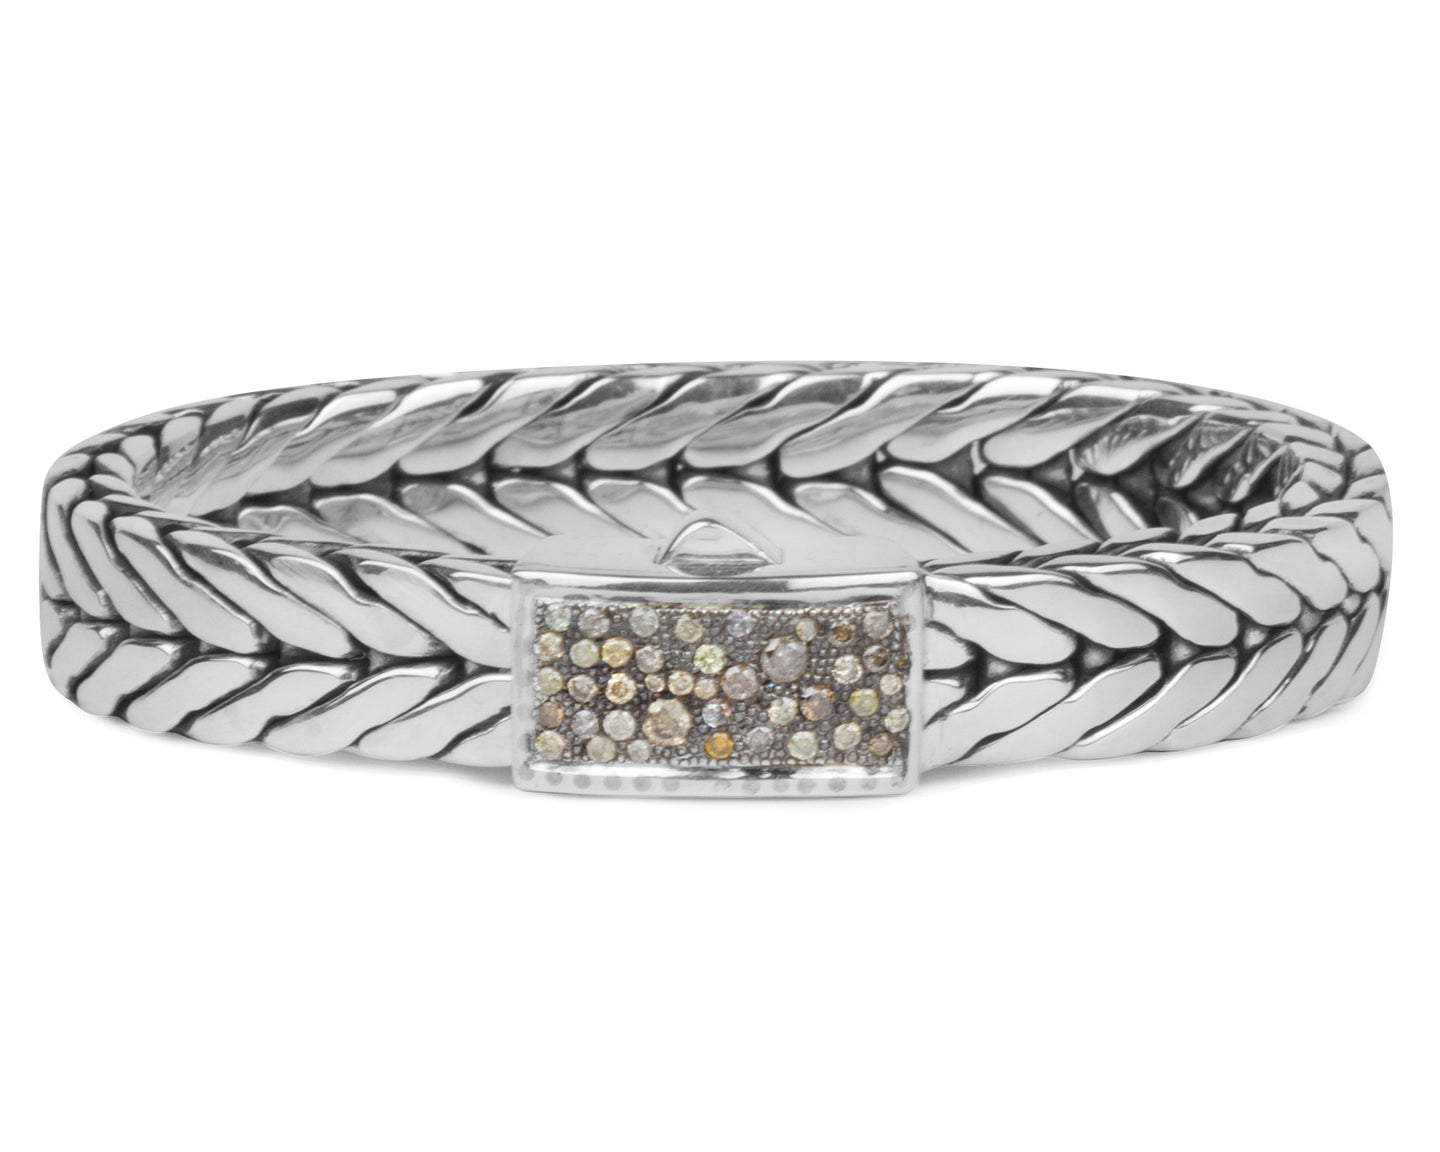 Mens Woven Silver Bracelet, 1/4 Inch – Designer Pearl and Leather ...